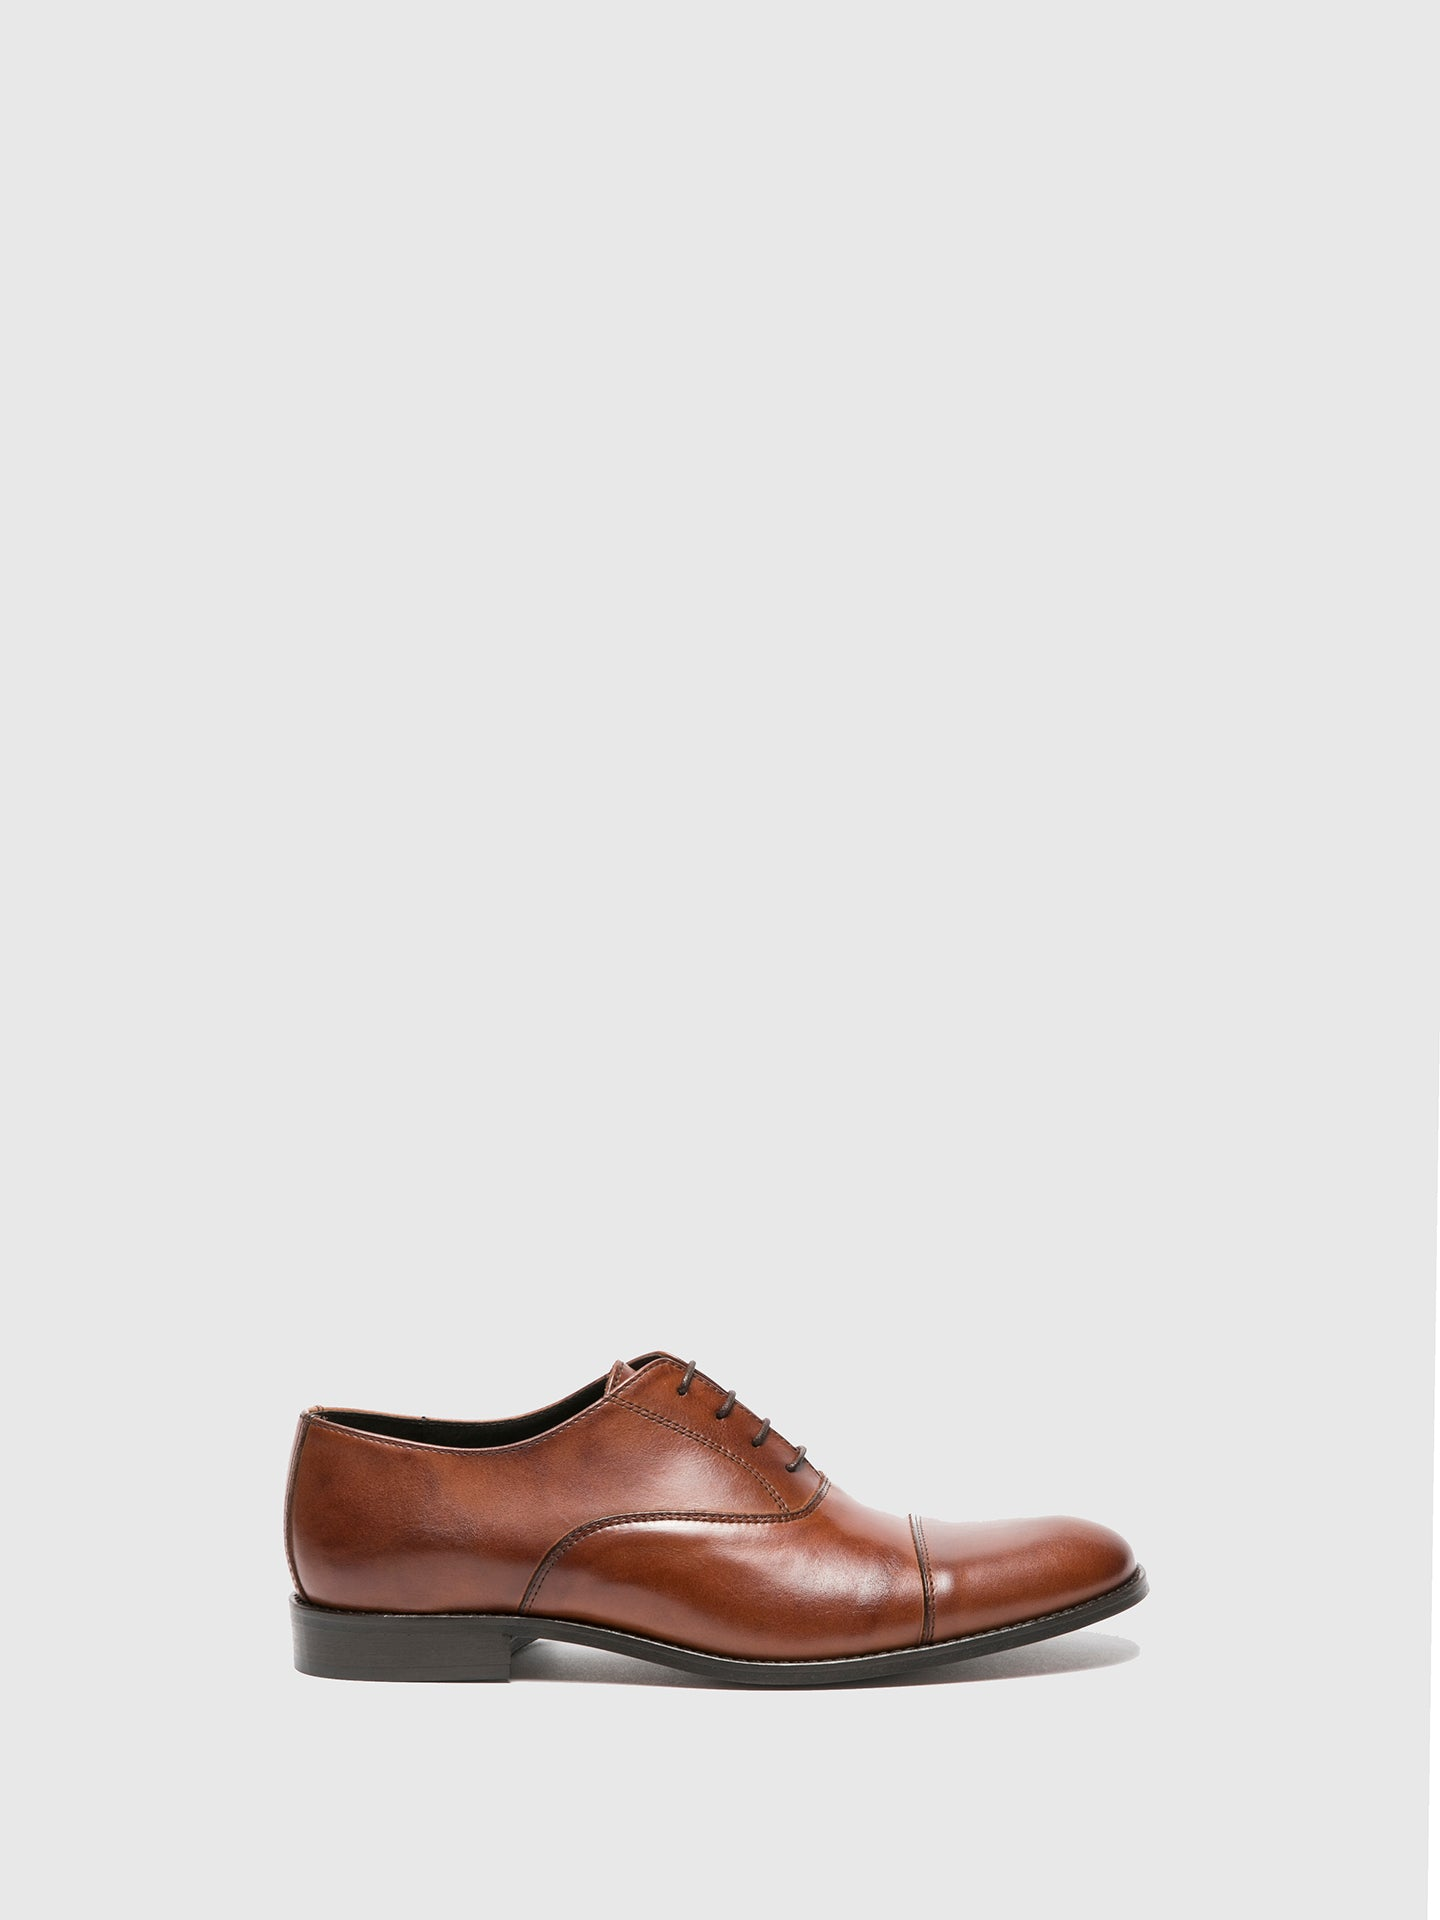 Foreva Brown Oxford Shoes